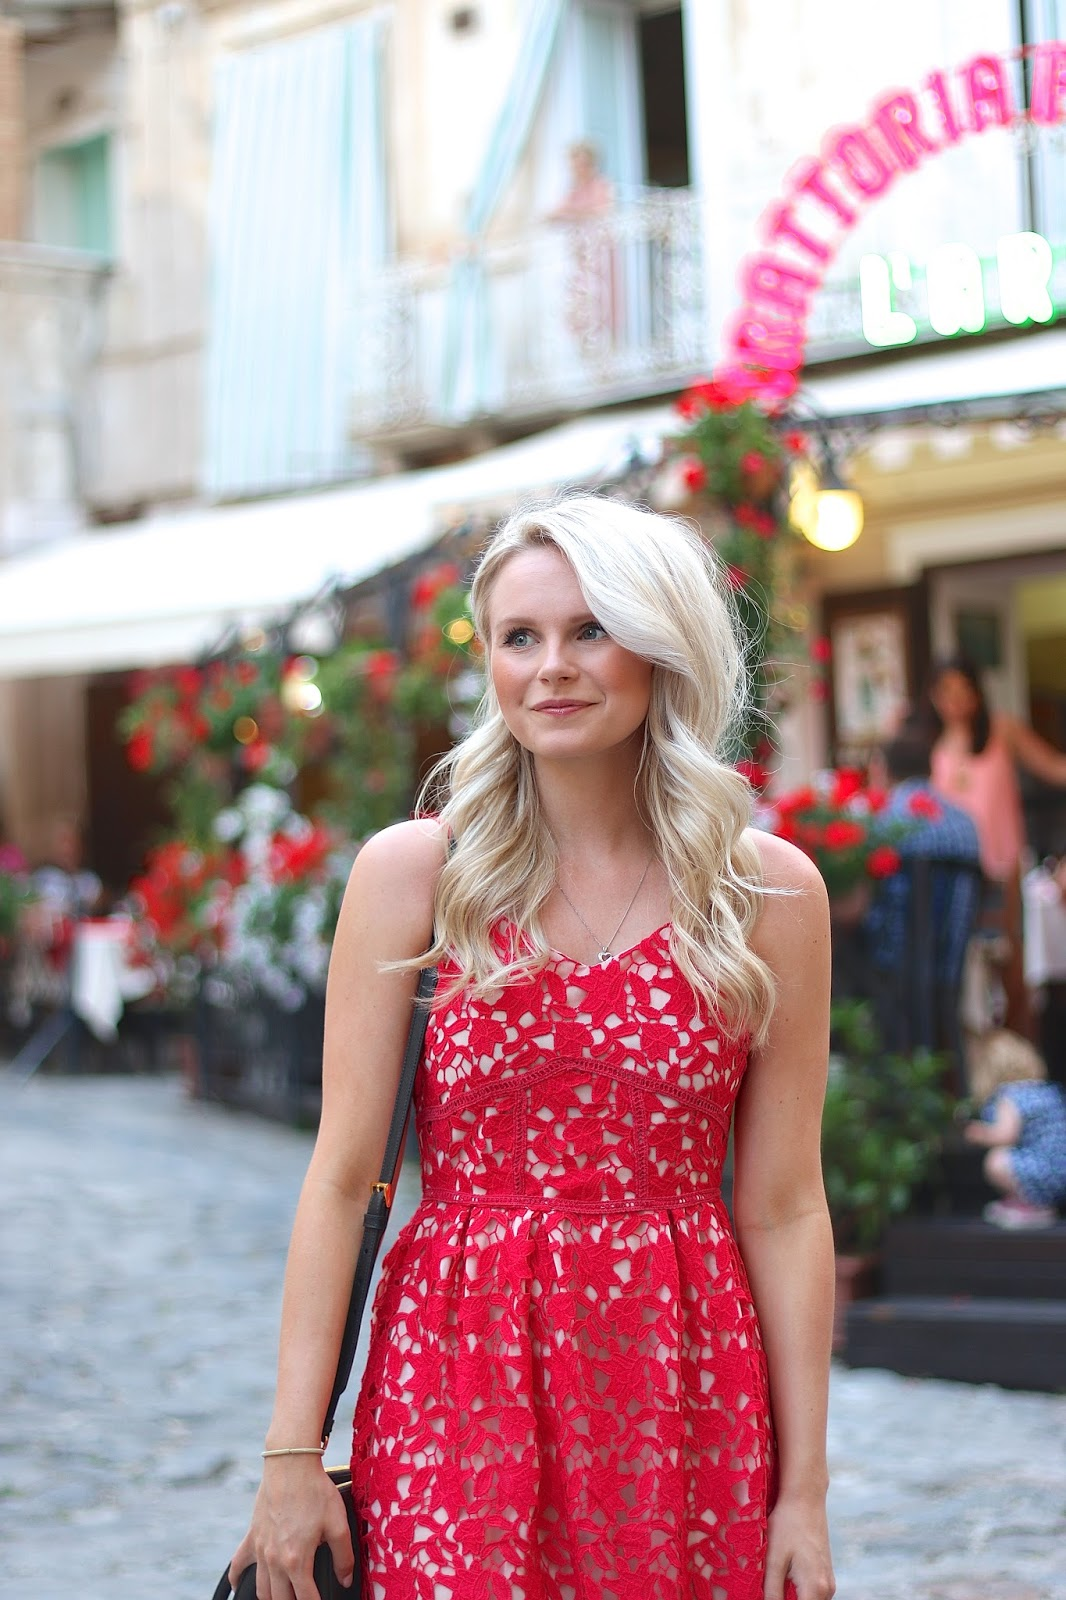 a girl wanders through italy in a red dress